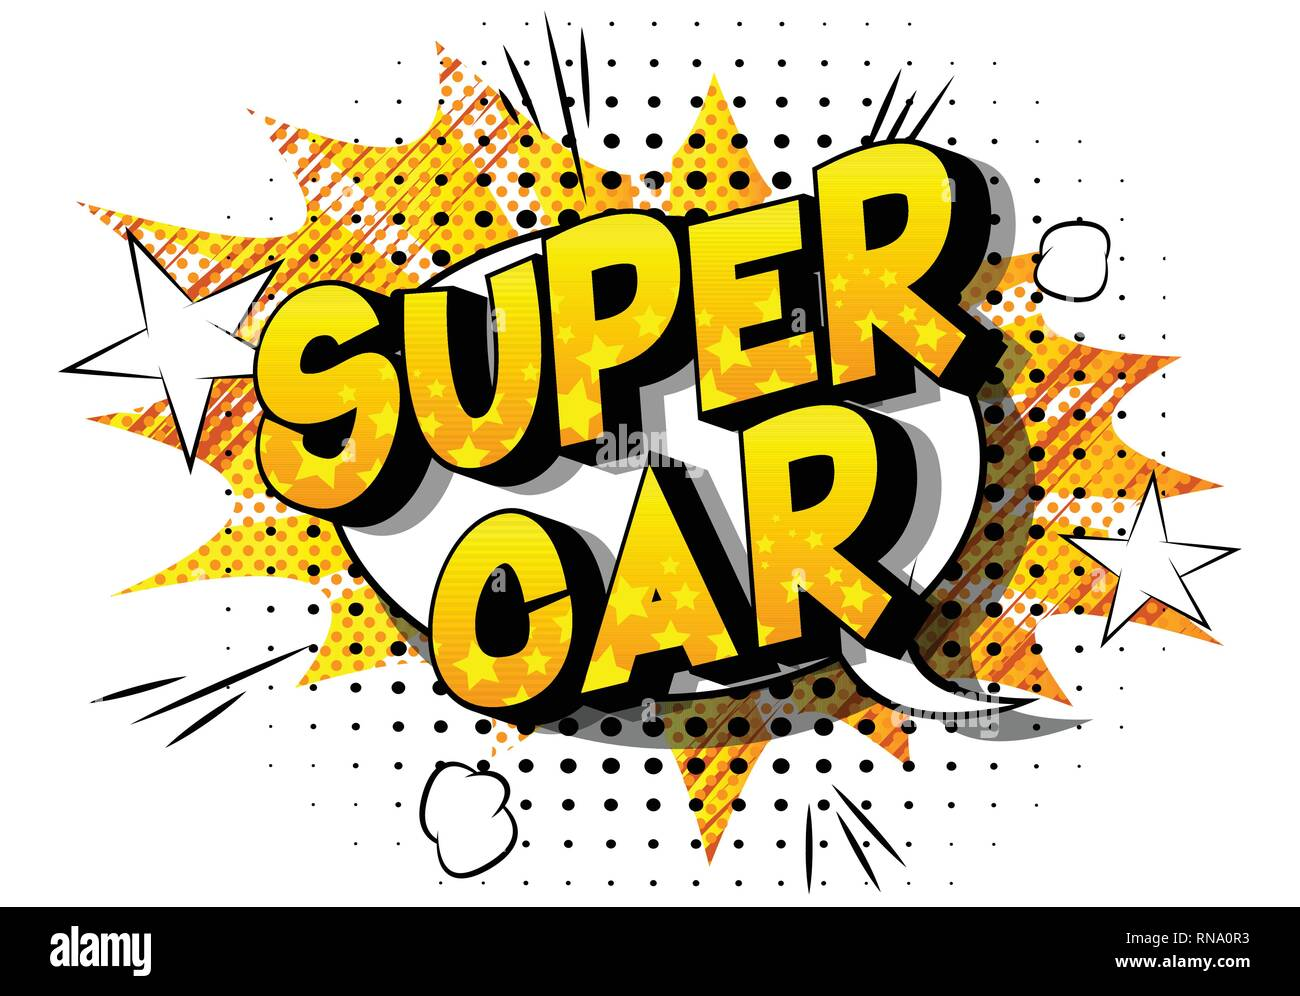 Super Car - Vector illustrated comic book style phrase on abstract background. - Stock Image